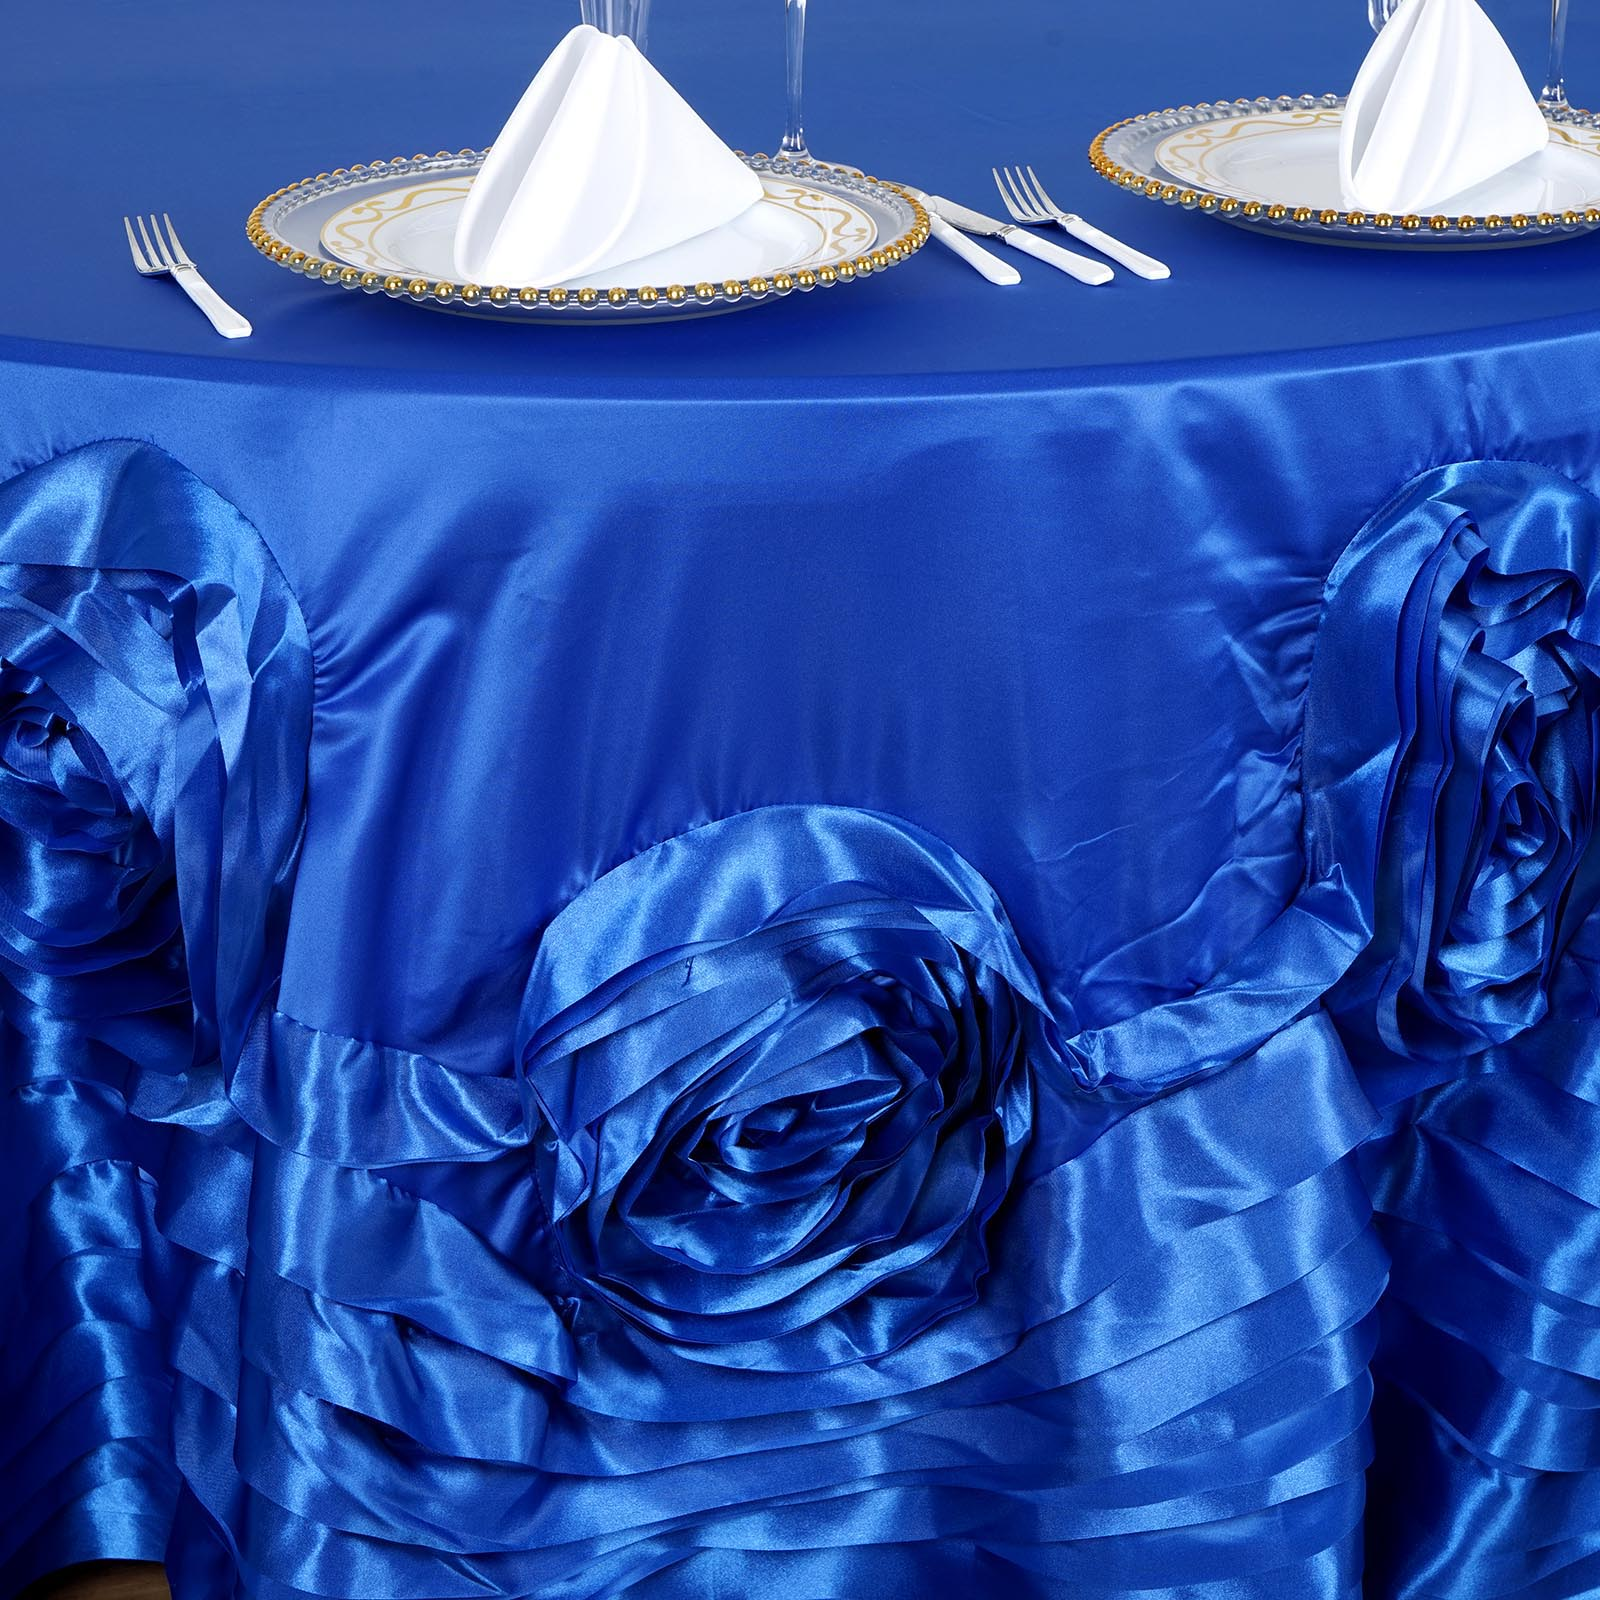 120-034-Large-Raised-Roses-Lamour-Satin-Round-Tablecloth-Decoration-Wedding-Dinner thumbnail 20